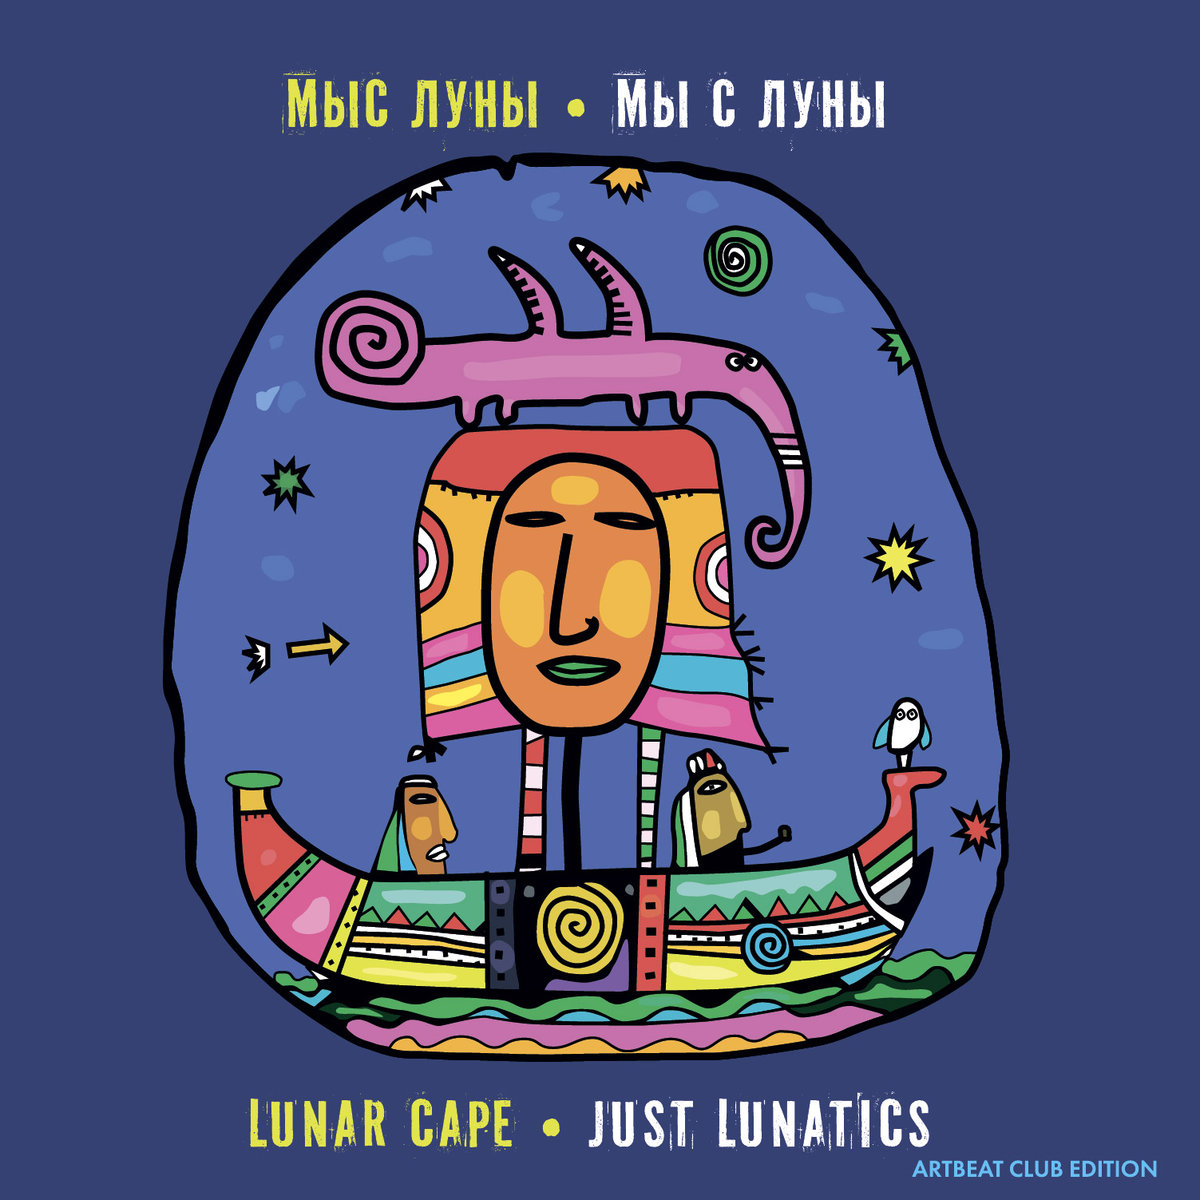 Lunar Cape - Mouse Dirigible @ 'Just Lunatics' album (jazz fusion, soundtrack)